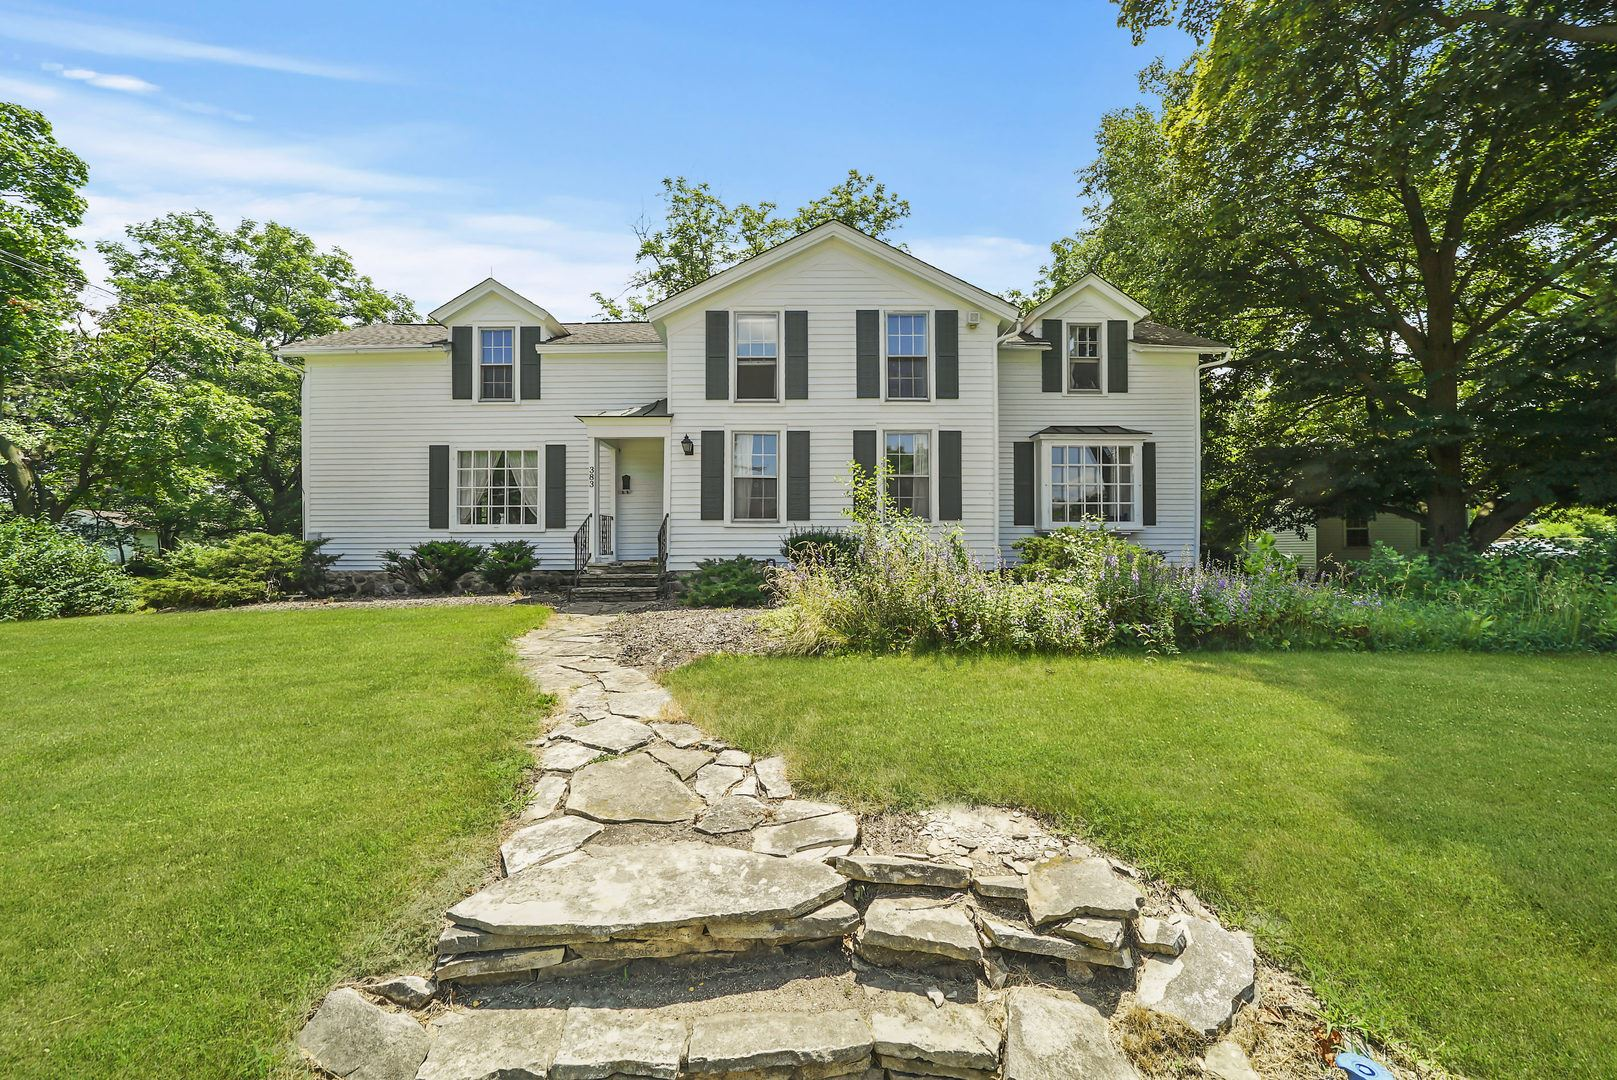 383 S Mchenry Avenue, Crystal Lake, IL 60014 - #: 10953800